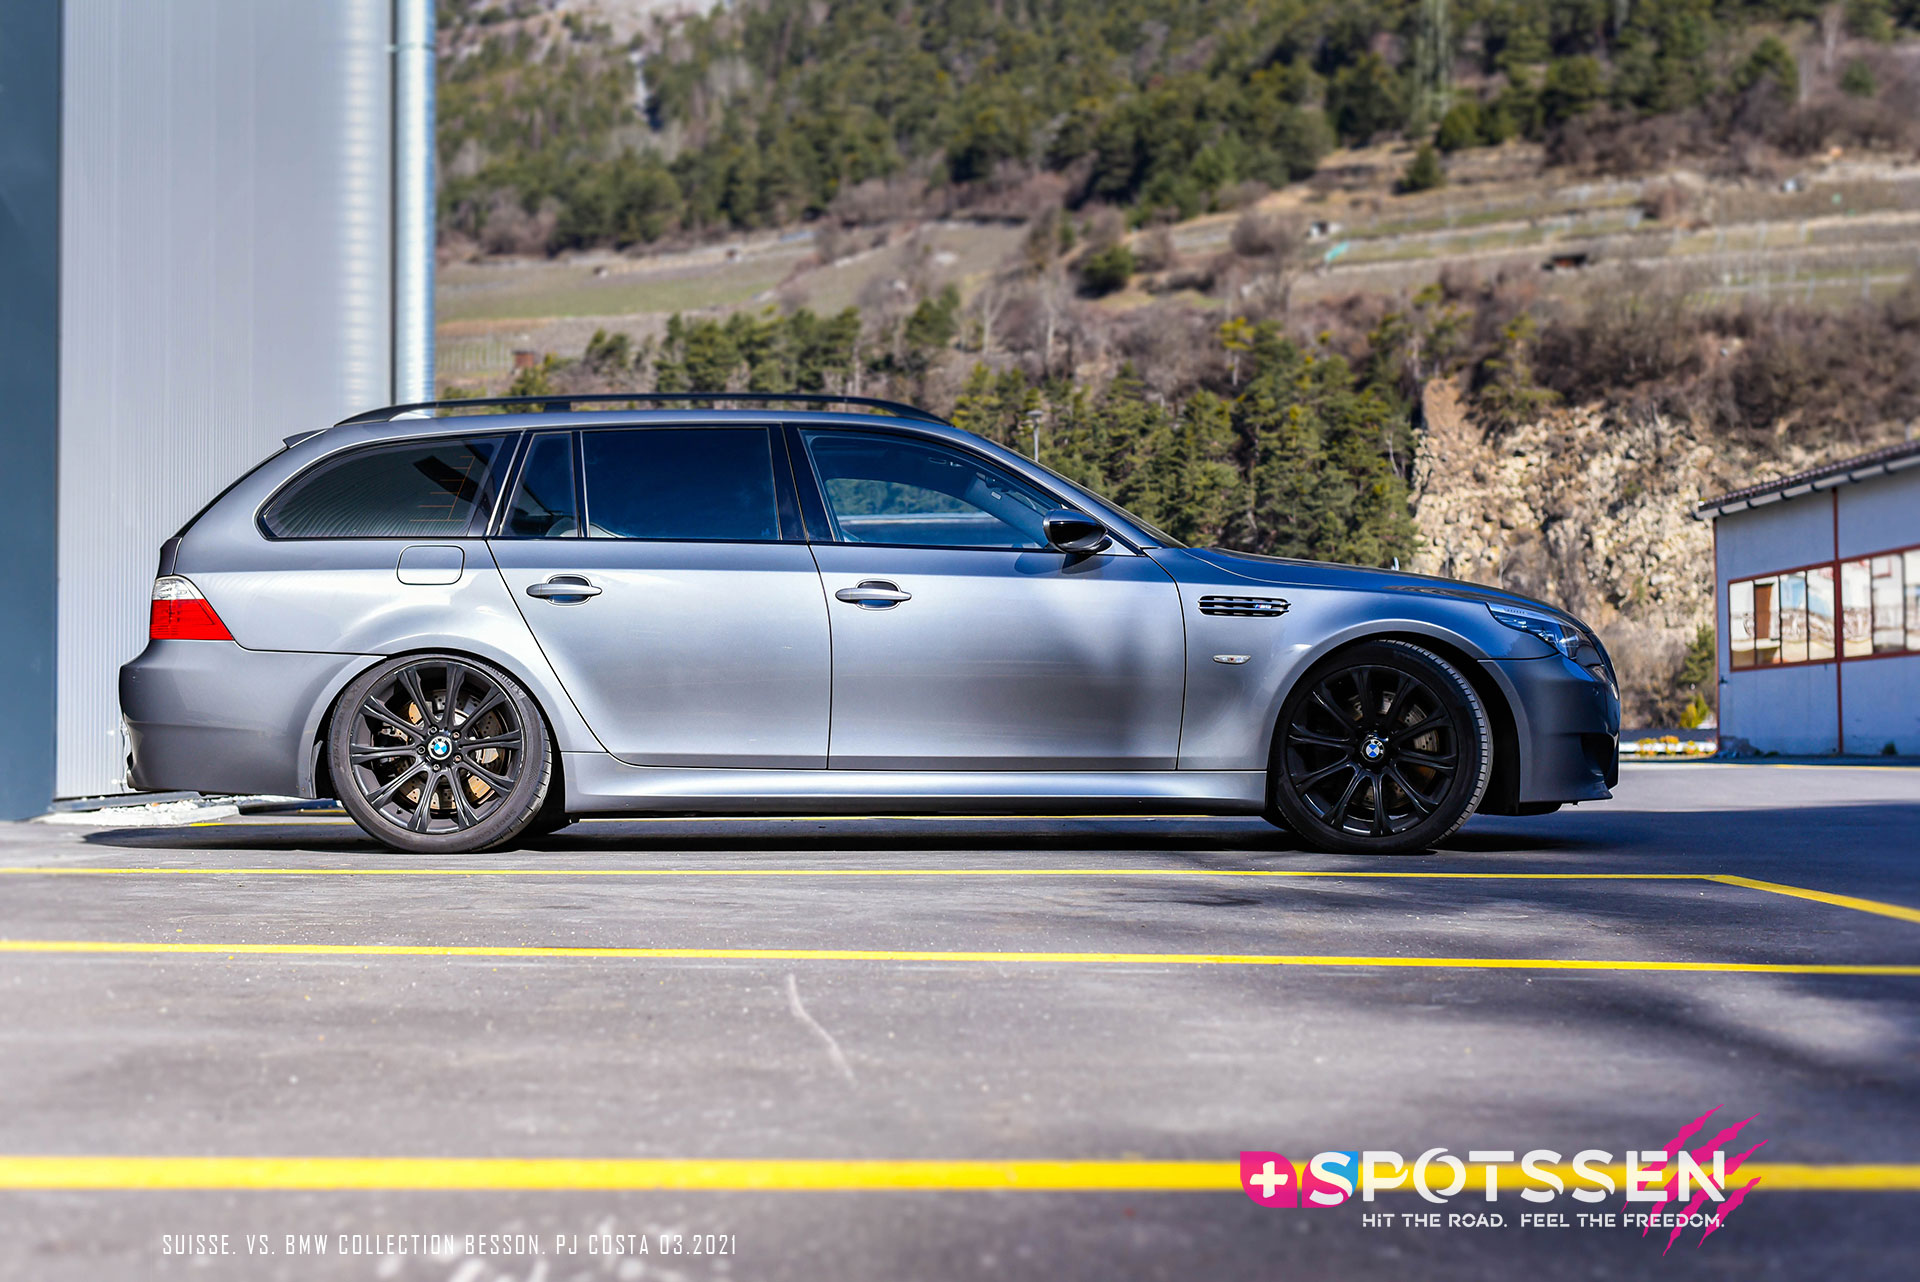 2021, bmw, collection besson, m5